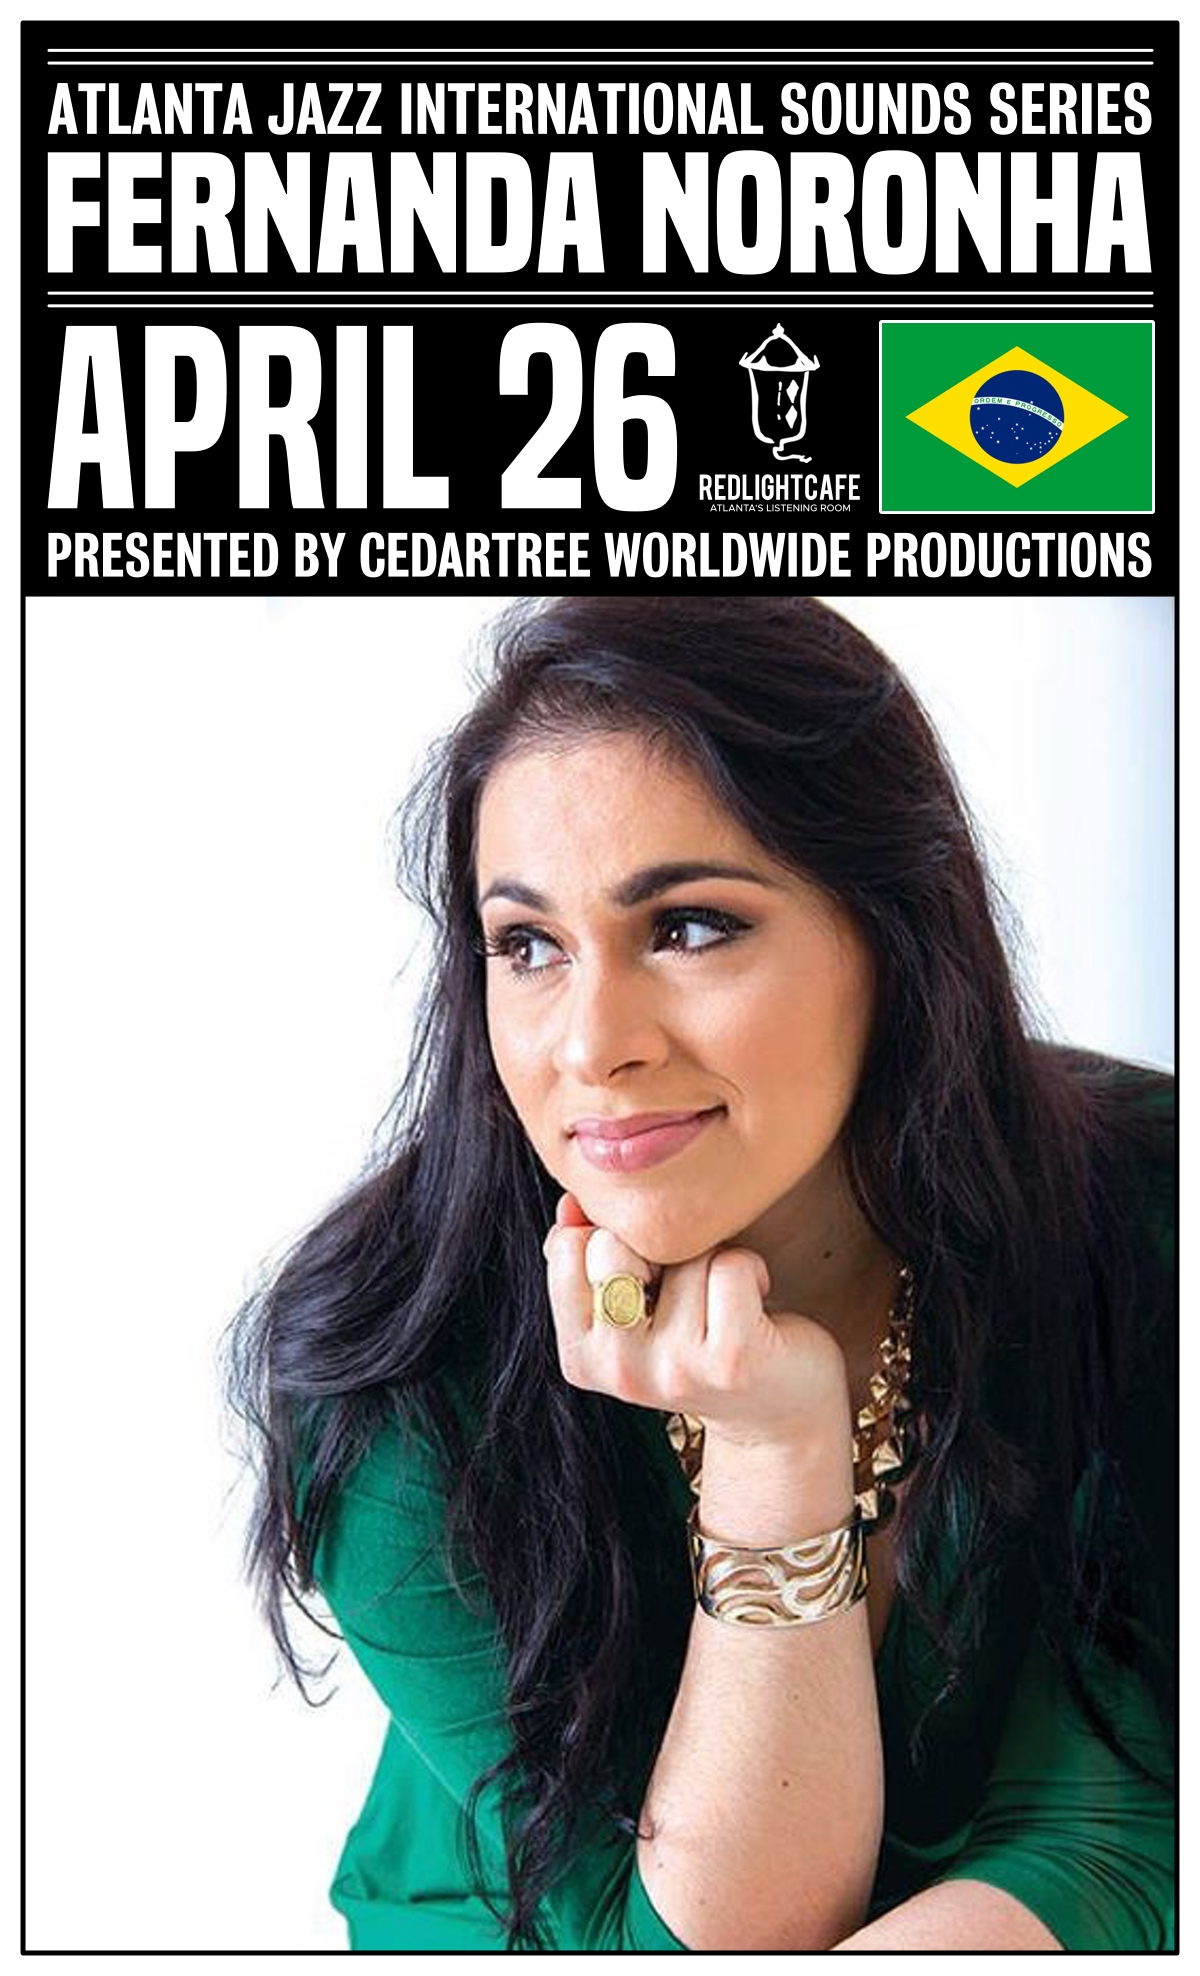 Atlanta Jazz International Sounds Series: Fernanda Noronha — April 26, 2019 — Red Light Café, Atlanta, GA